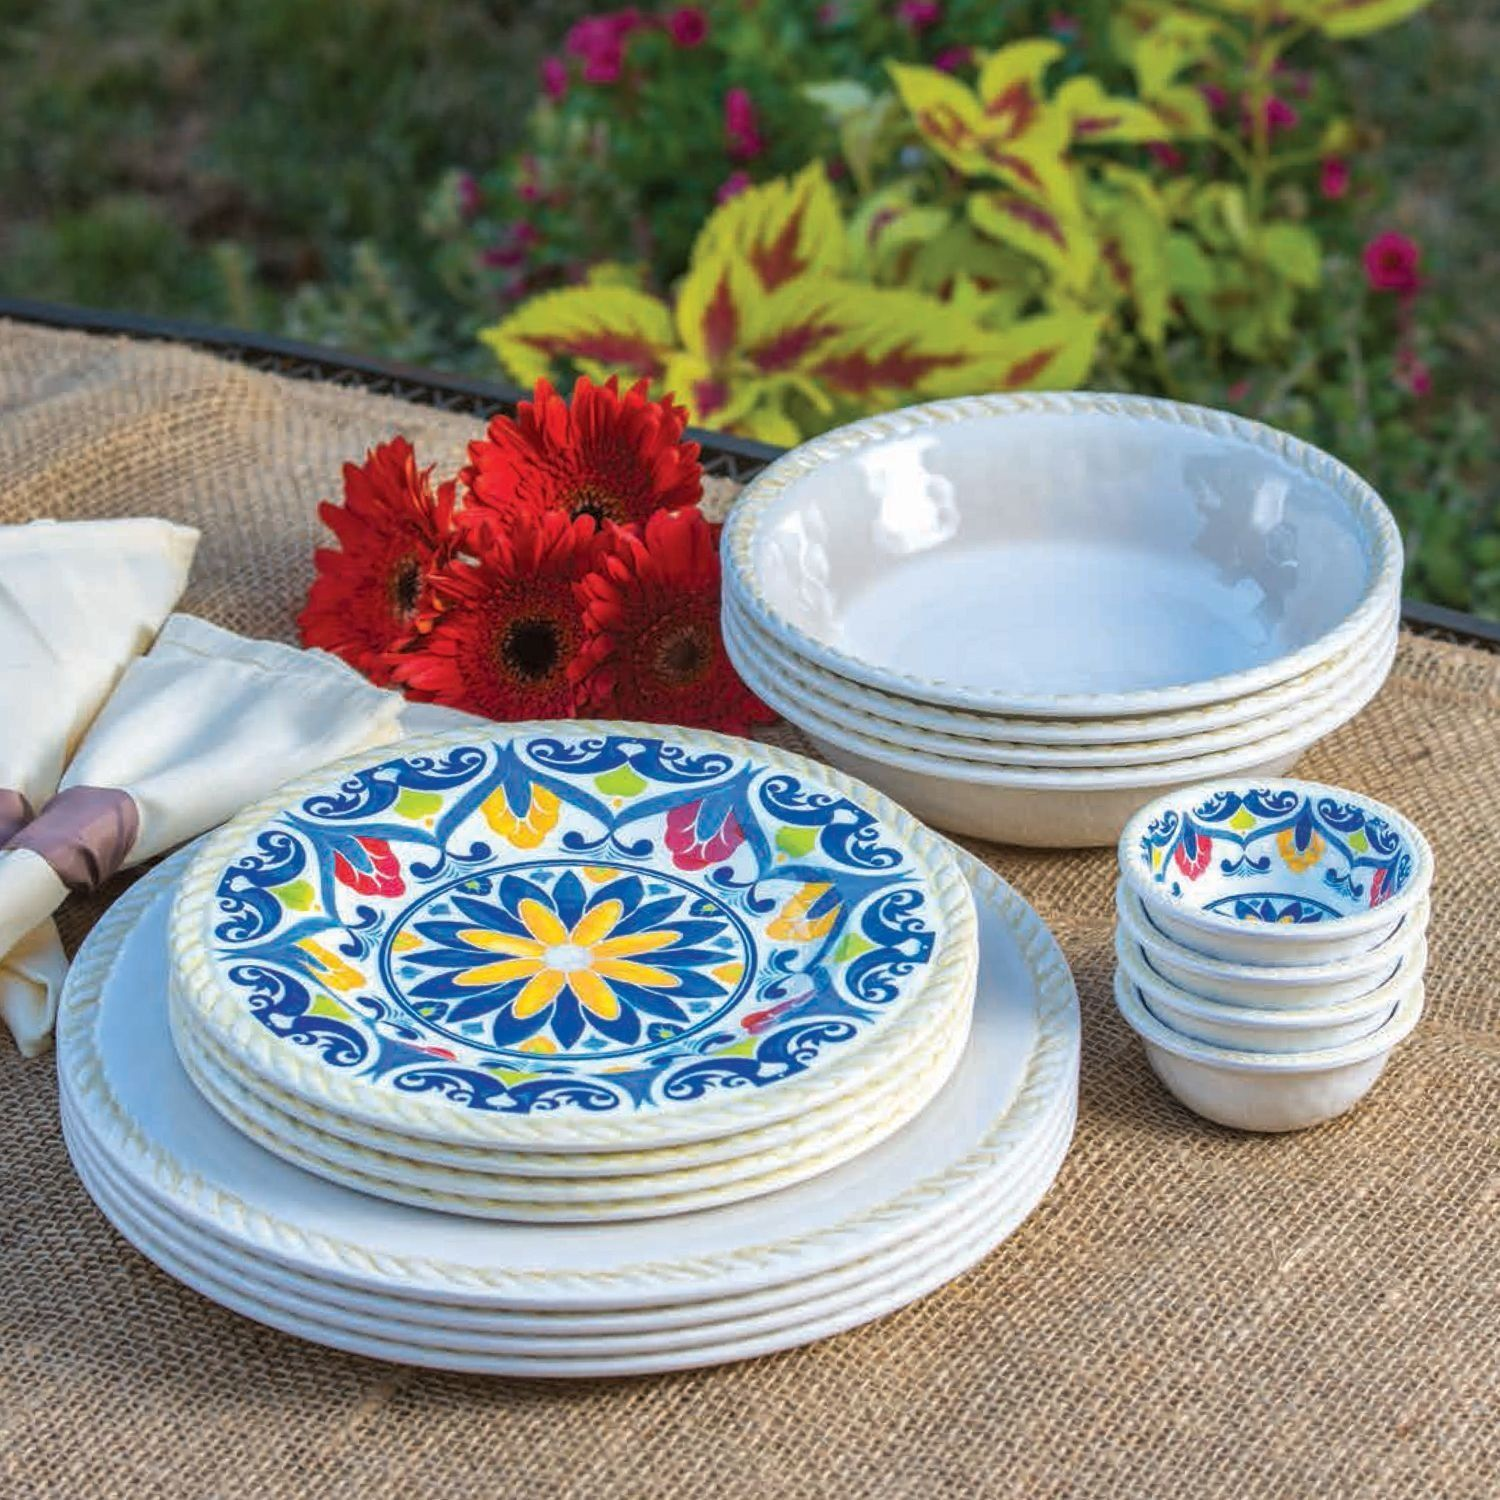 On the off chance that you are surfing in online like melamine plates meaning then you & On the off chance that you are surfing in online like melamine ...